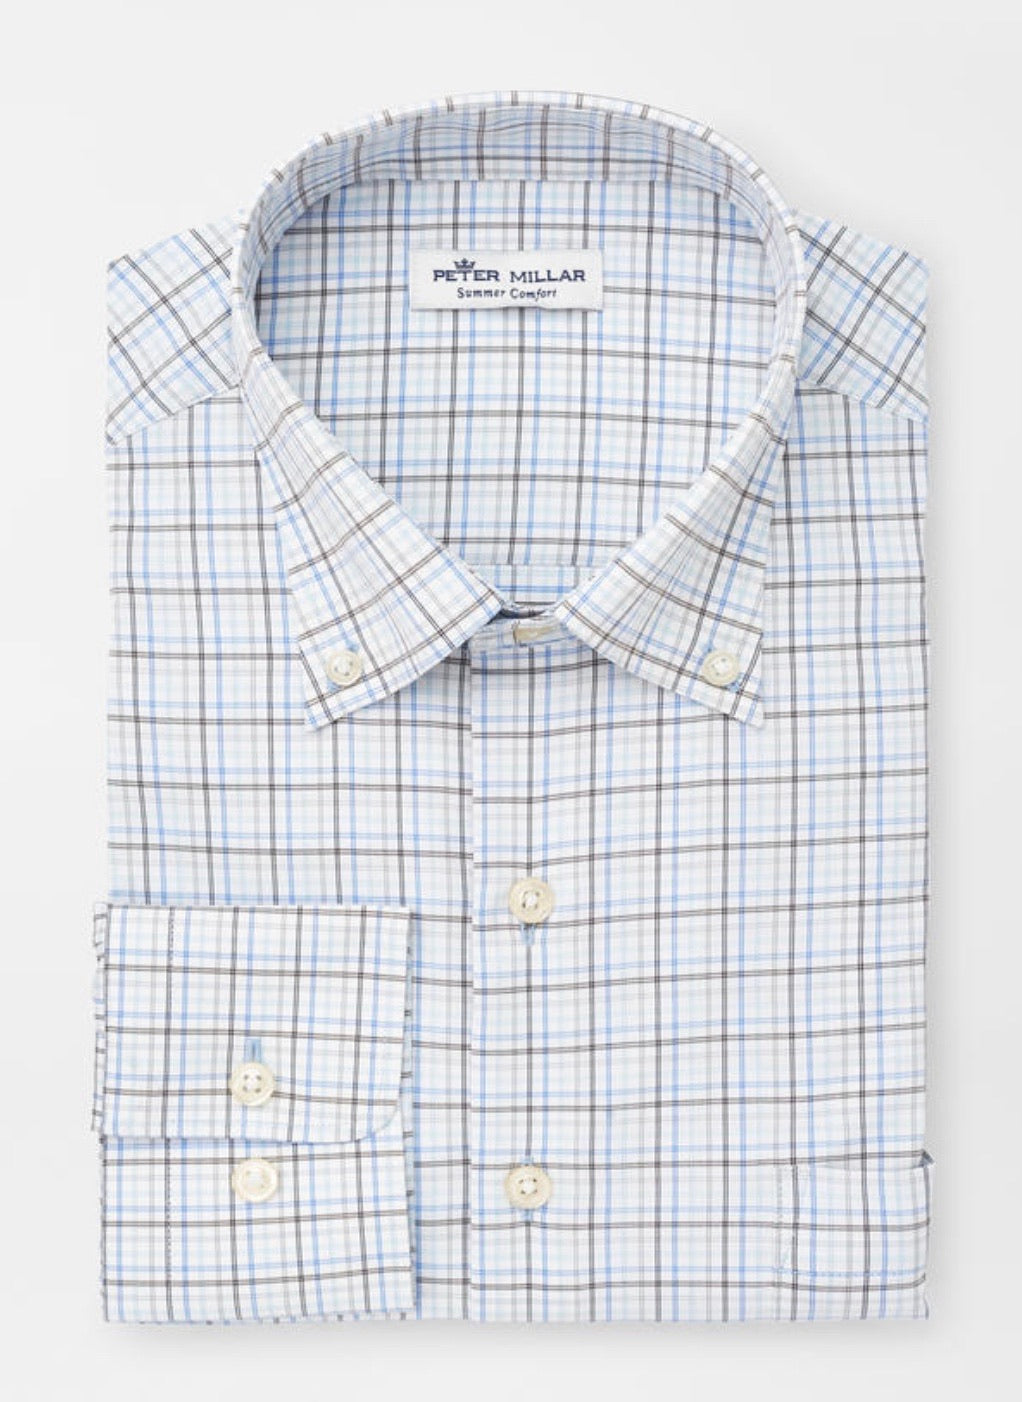 Peter Millar Fulton Performance Shirt